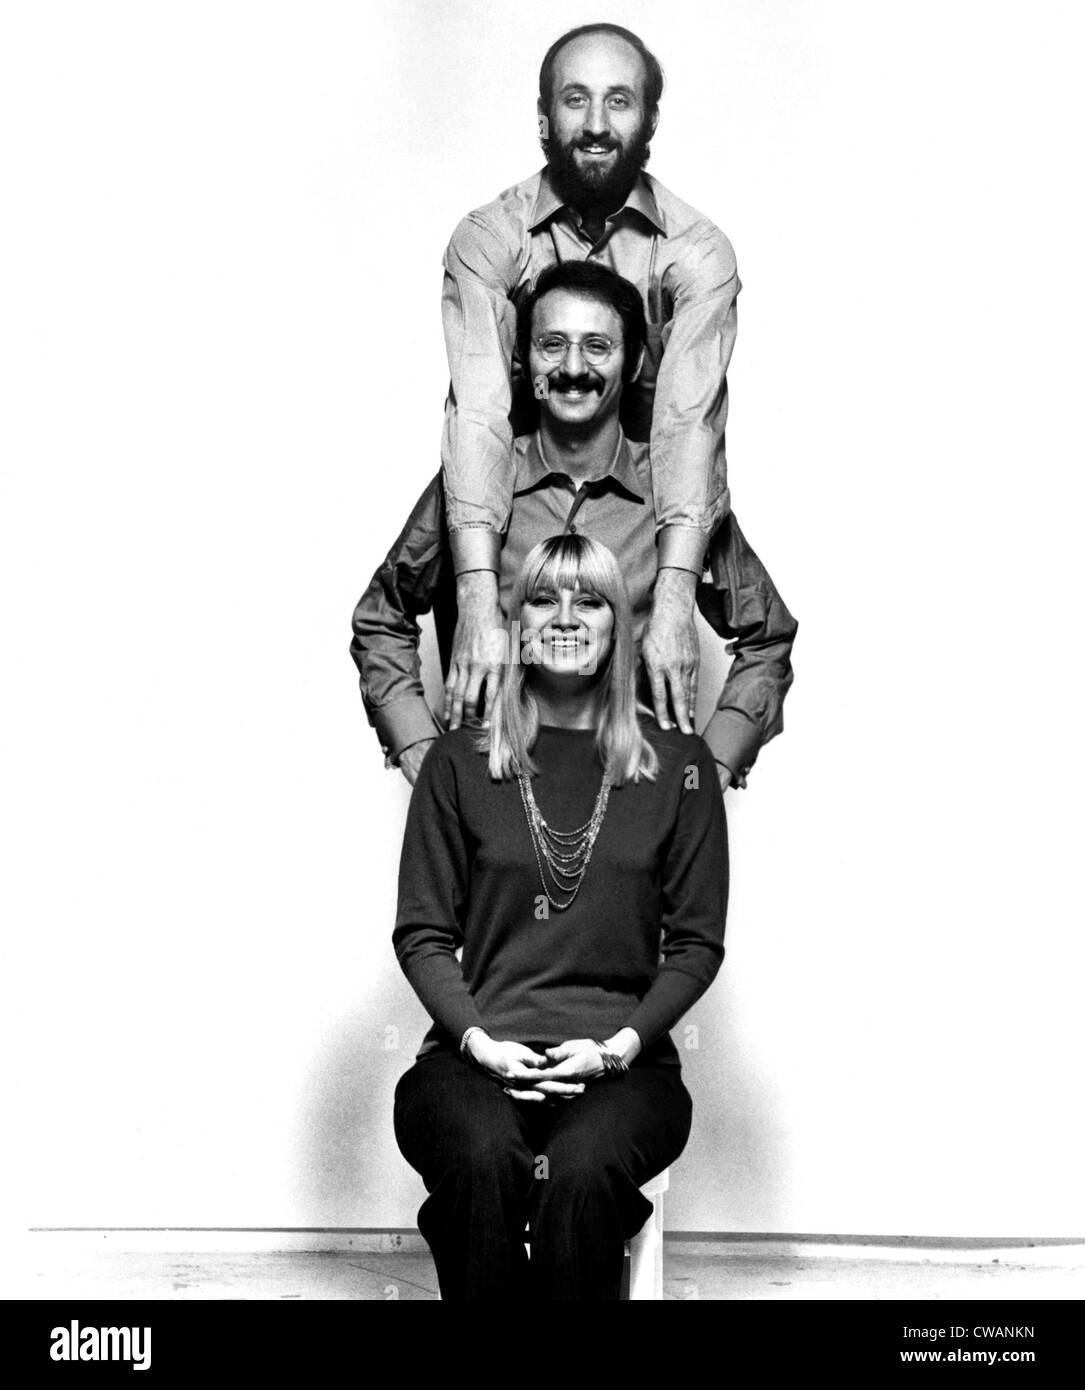 Peter Paul and Mary, (Peter Yarrow, Paul Stookey, Mary Travers), 1960s. Courtesy: CSU Archives / Everett Collection - Stock Image